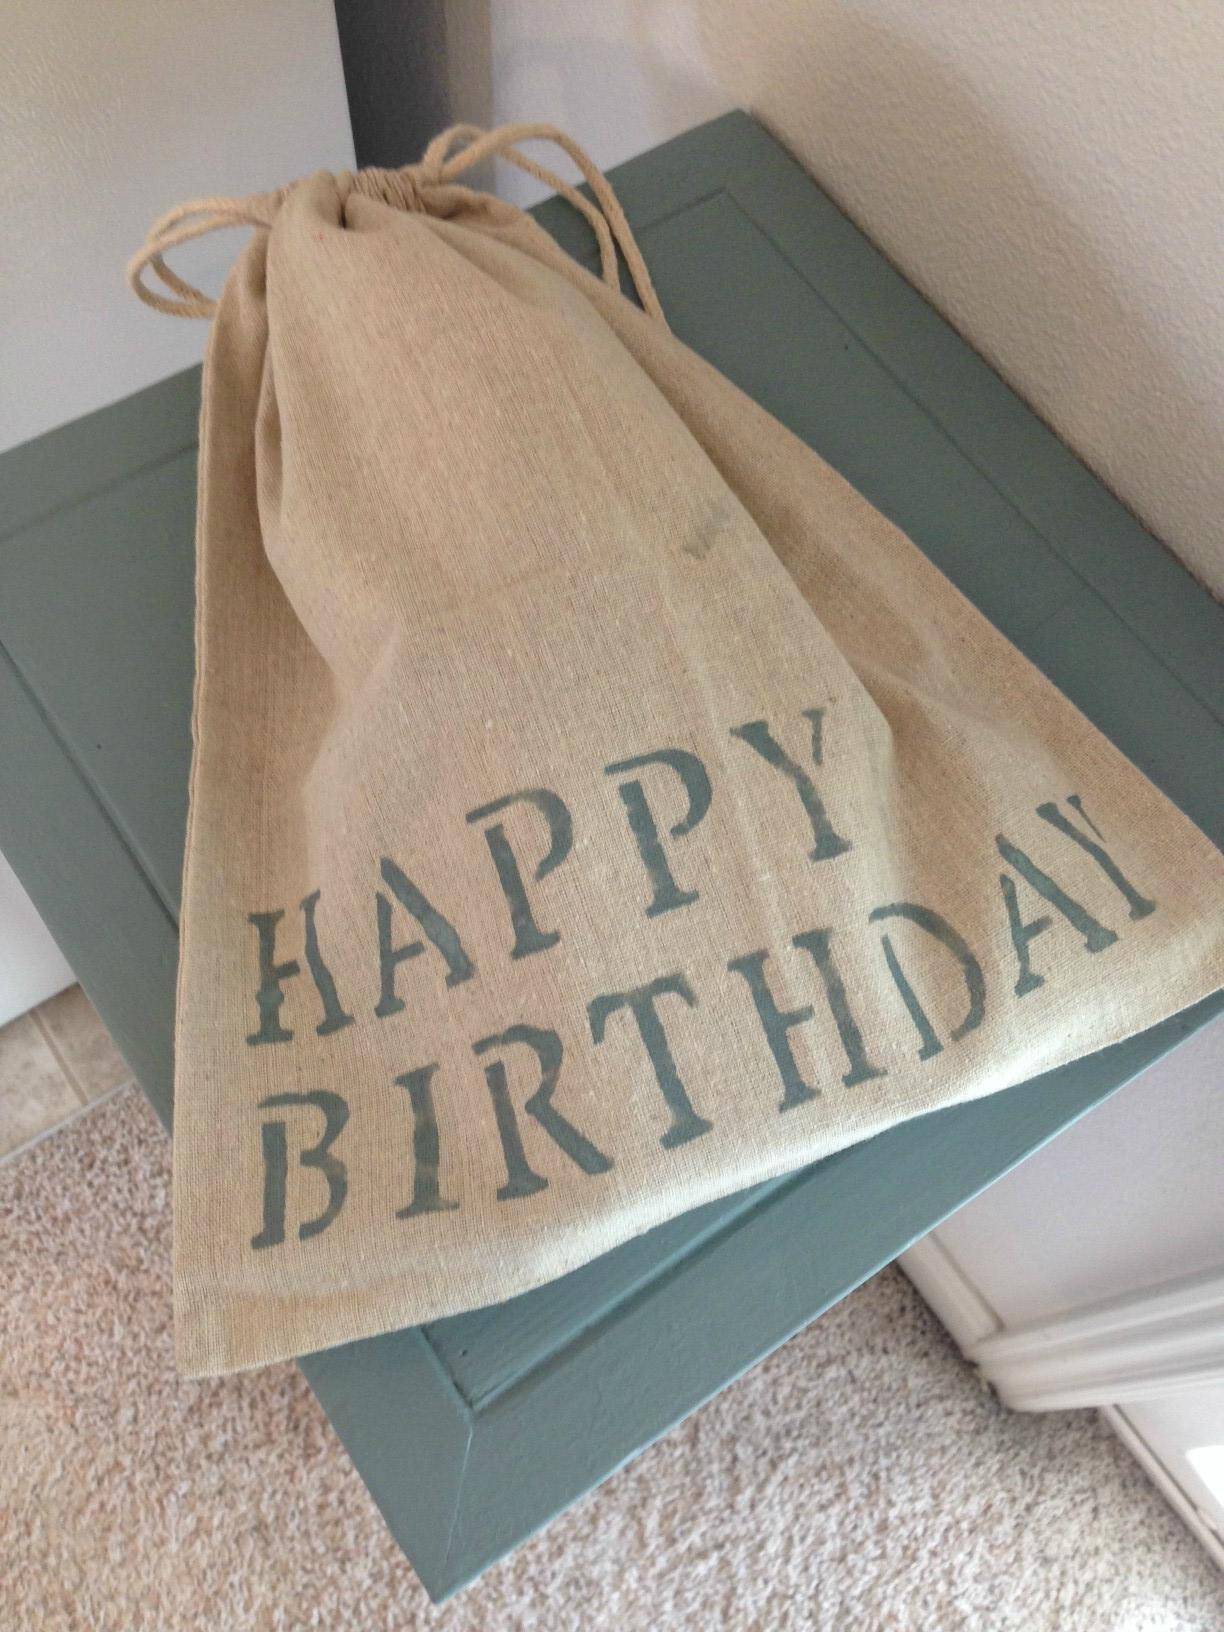 It's finished off with this awesome birthday bag. Something tells us he was stoked to receive this cool present.